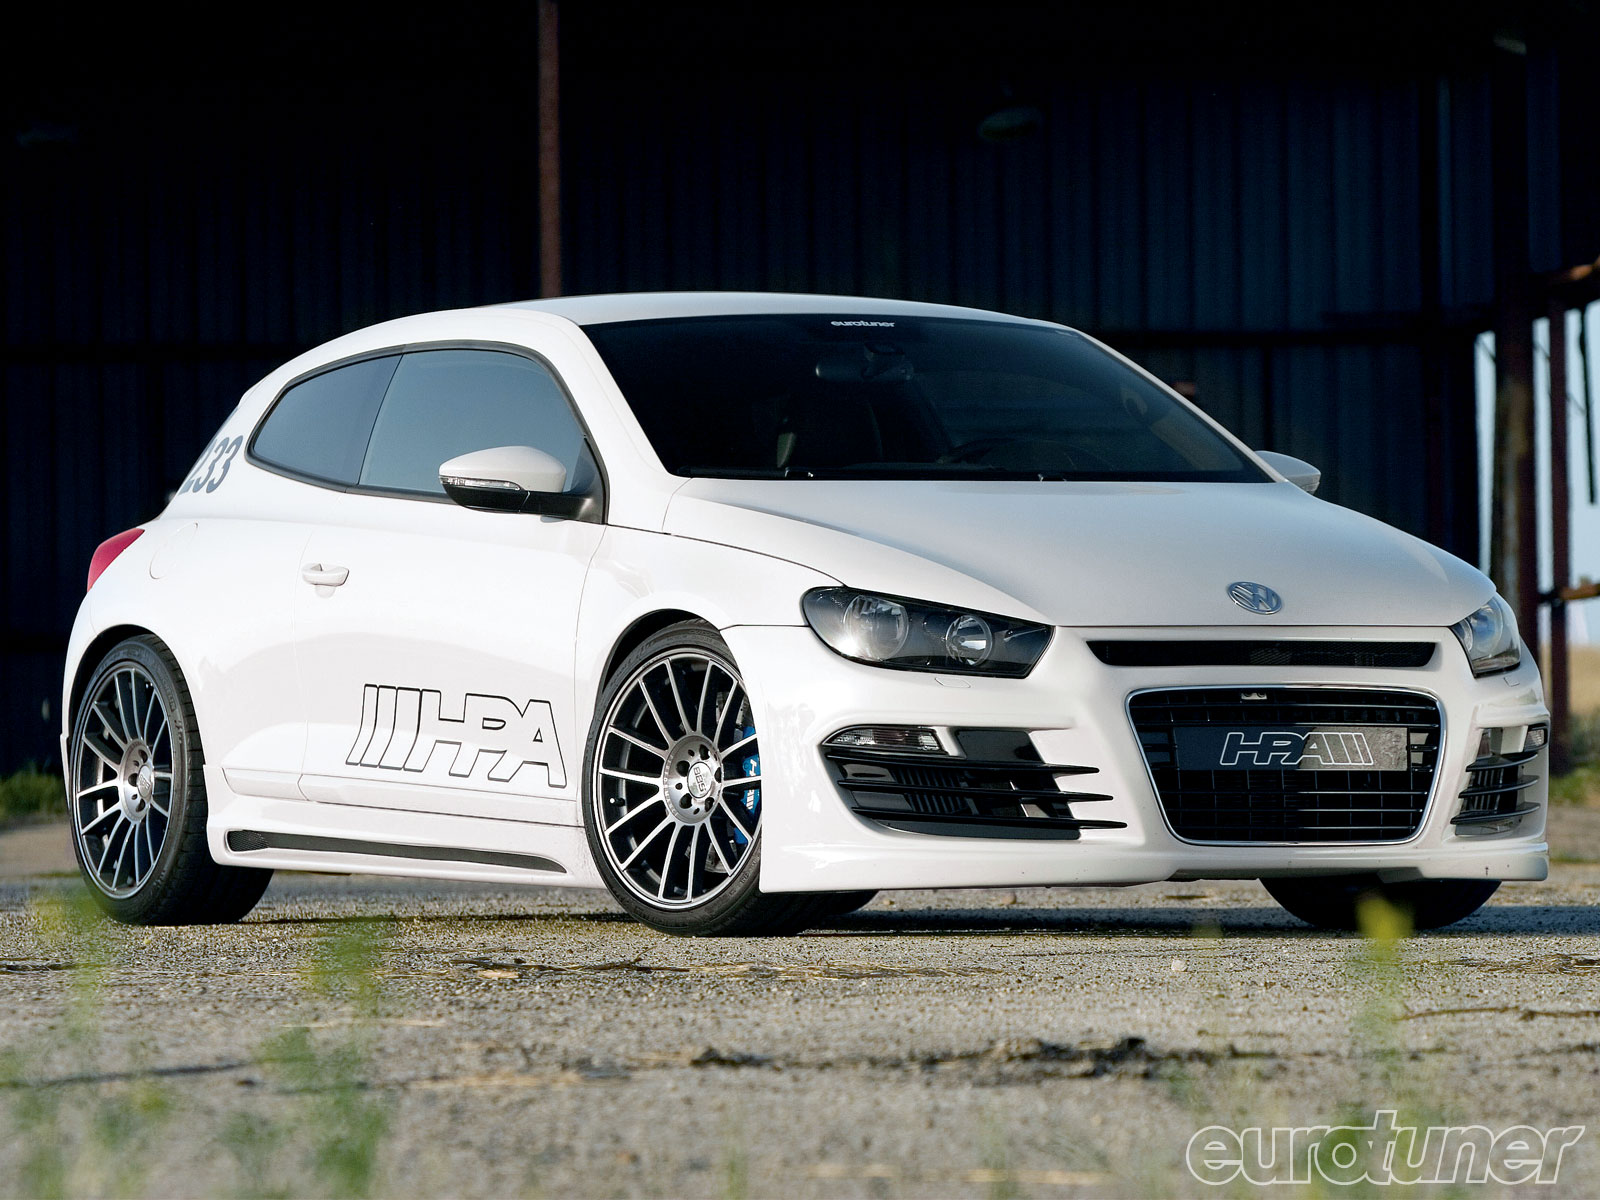 2010 VW Scirocco - 565hp VR6 Biturbo Version - Eurotuner